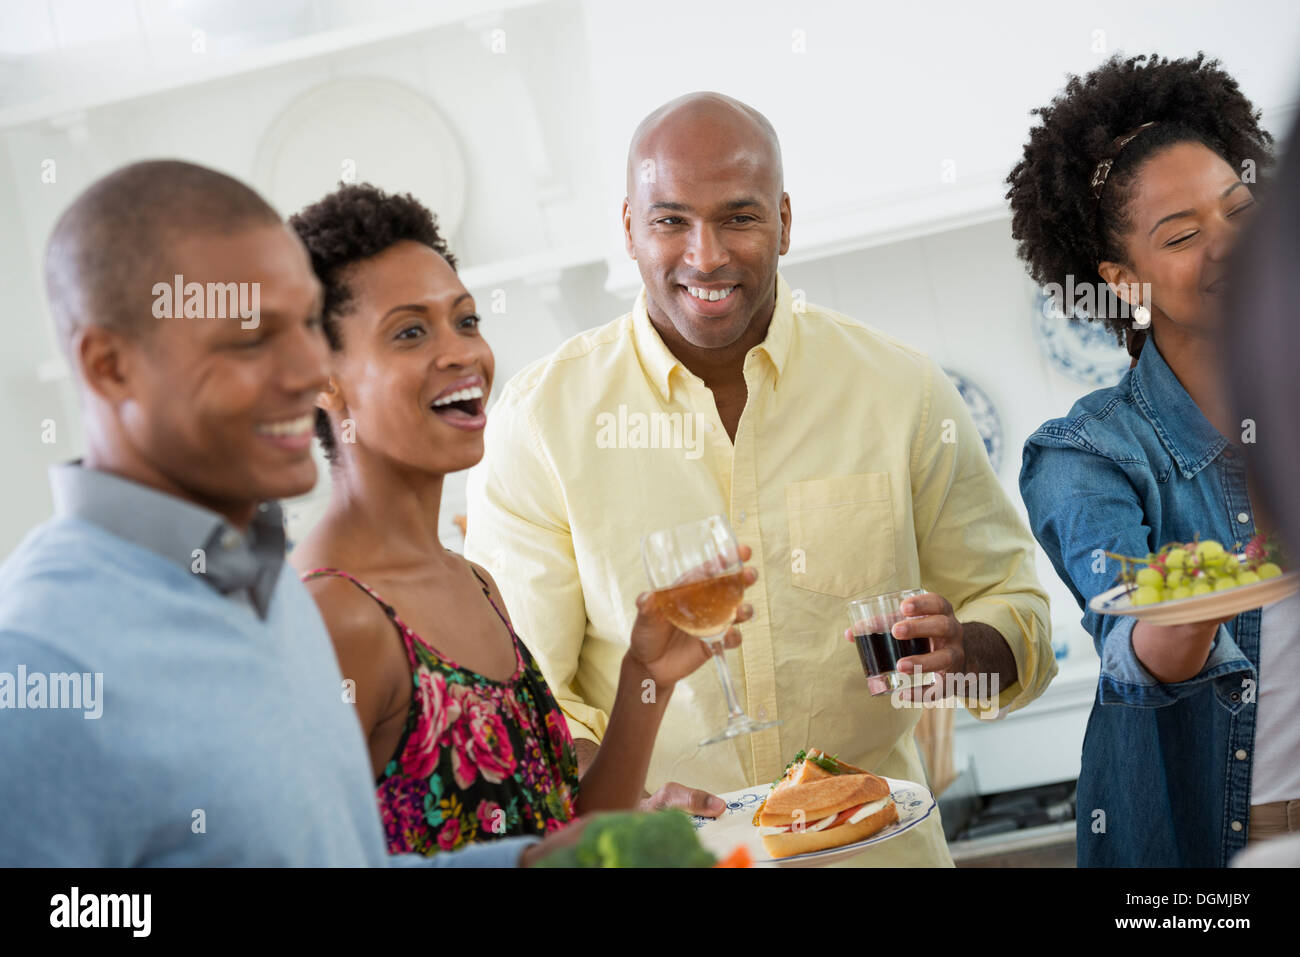 An informal office party. People handing plates of food across a buffet table. - Stock Image